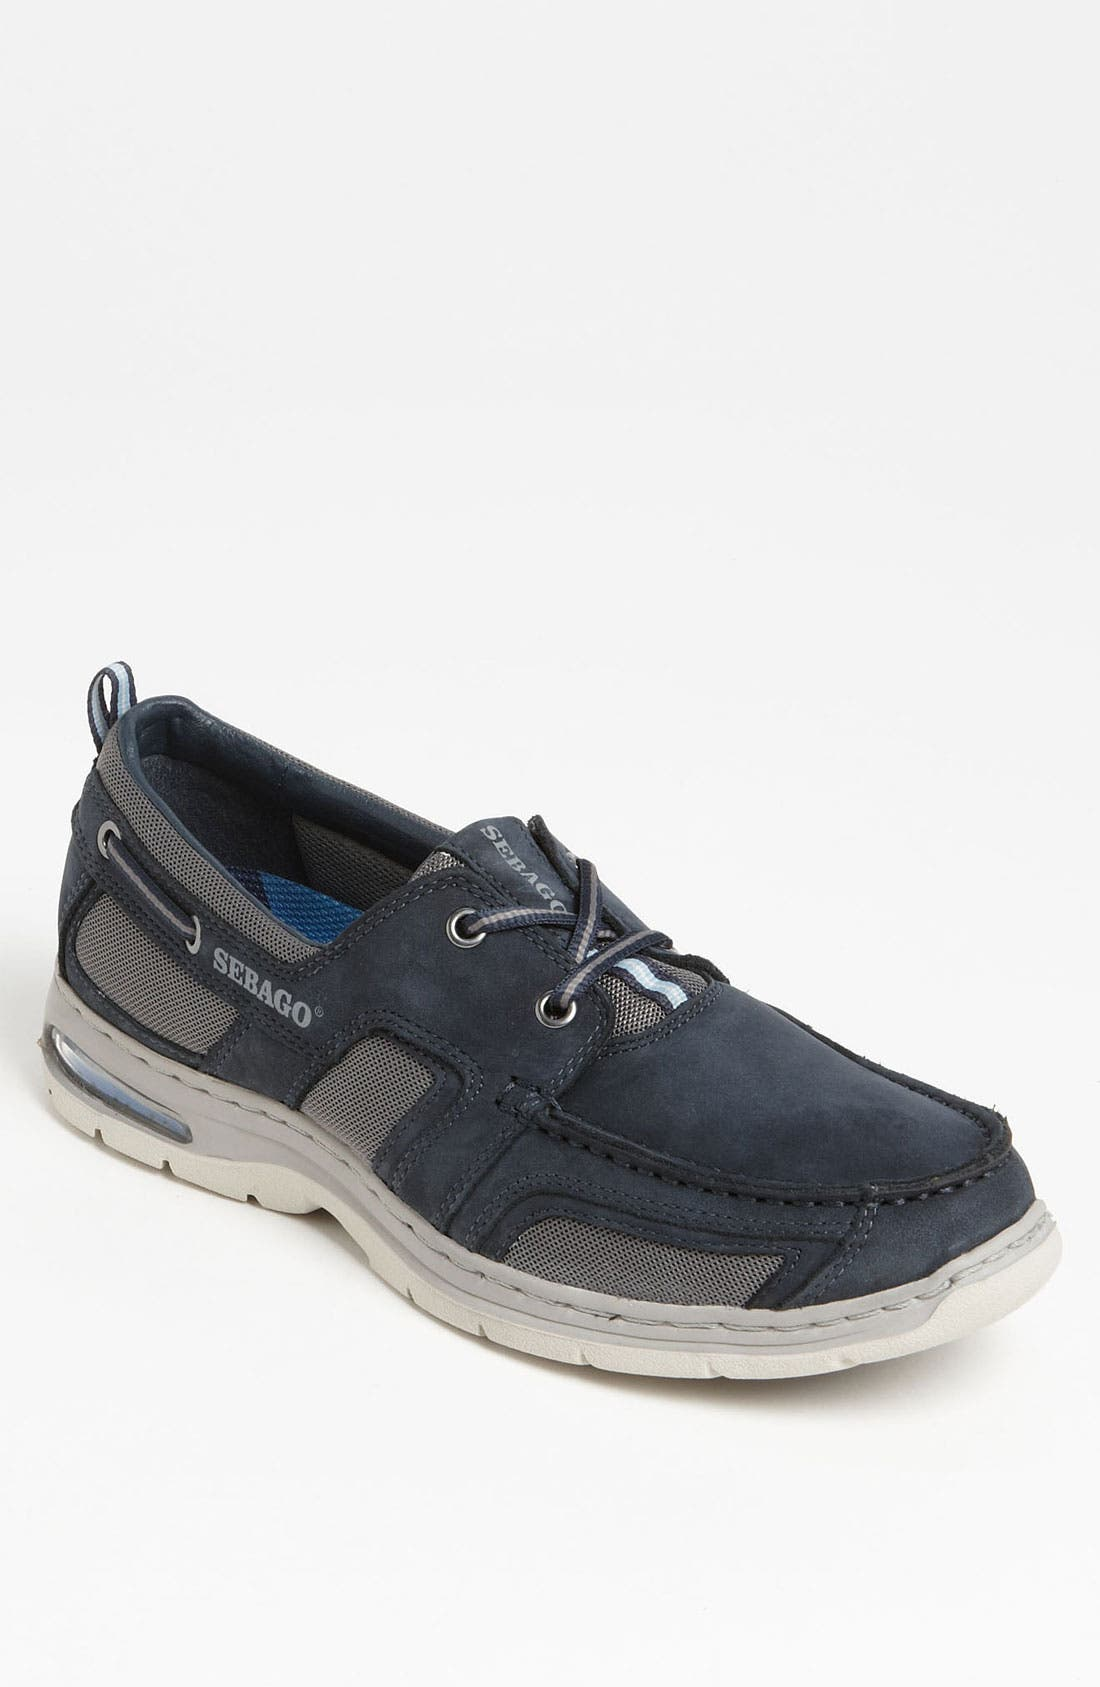 Main Image - Sebago 'Offshore Catch' Boat Shoe